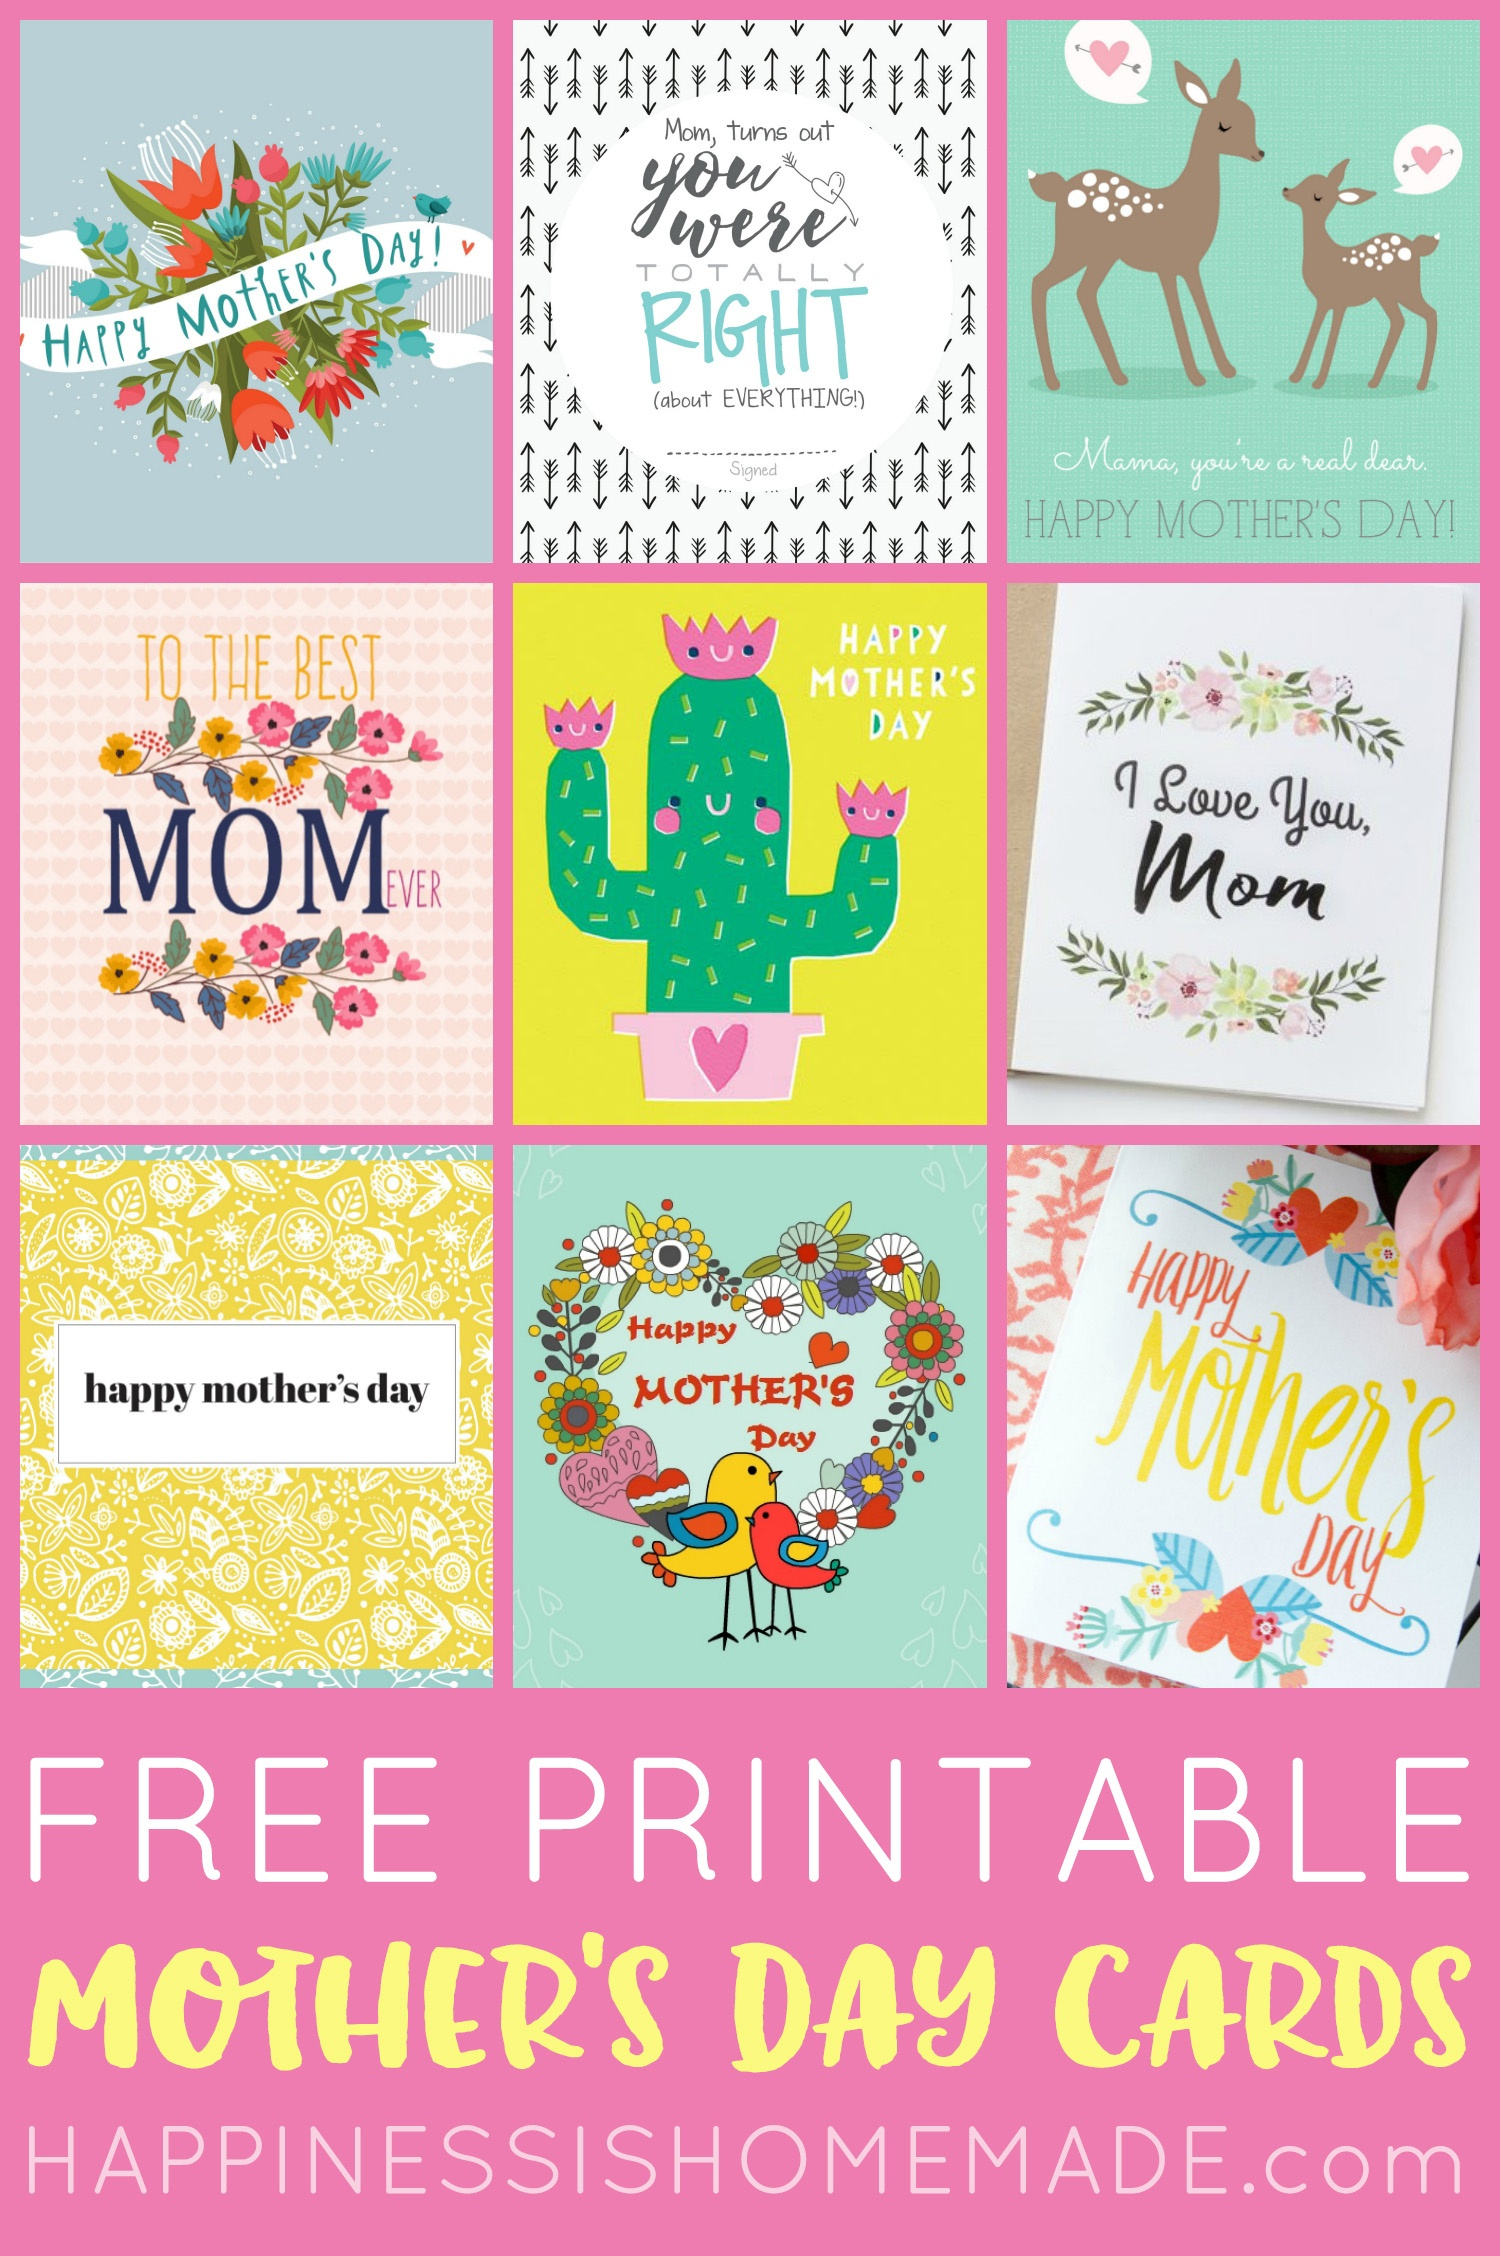 Free Printable Mother's Day Cards - Happiness Is Homemade - Free Printable Picture Cards